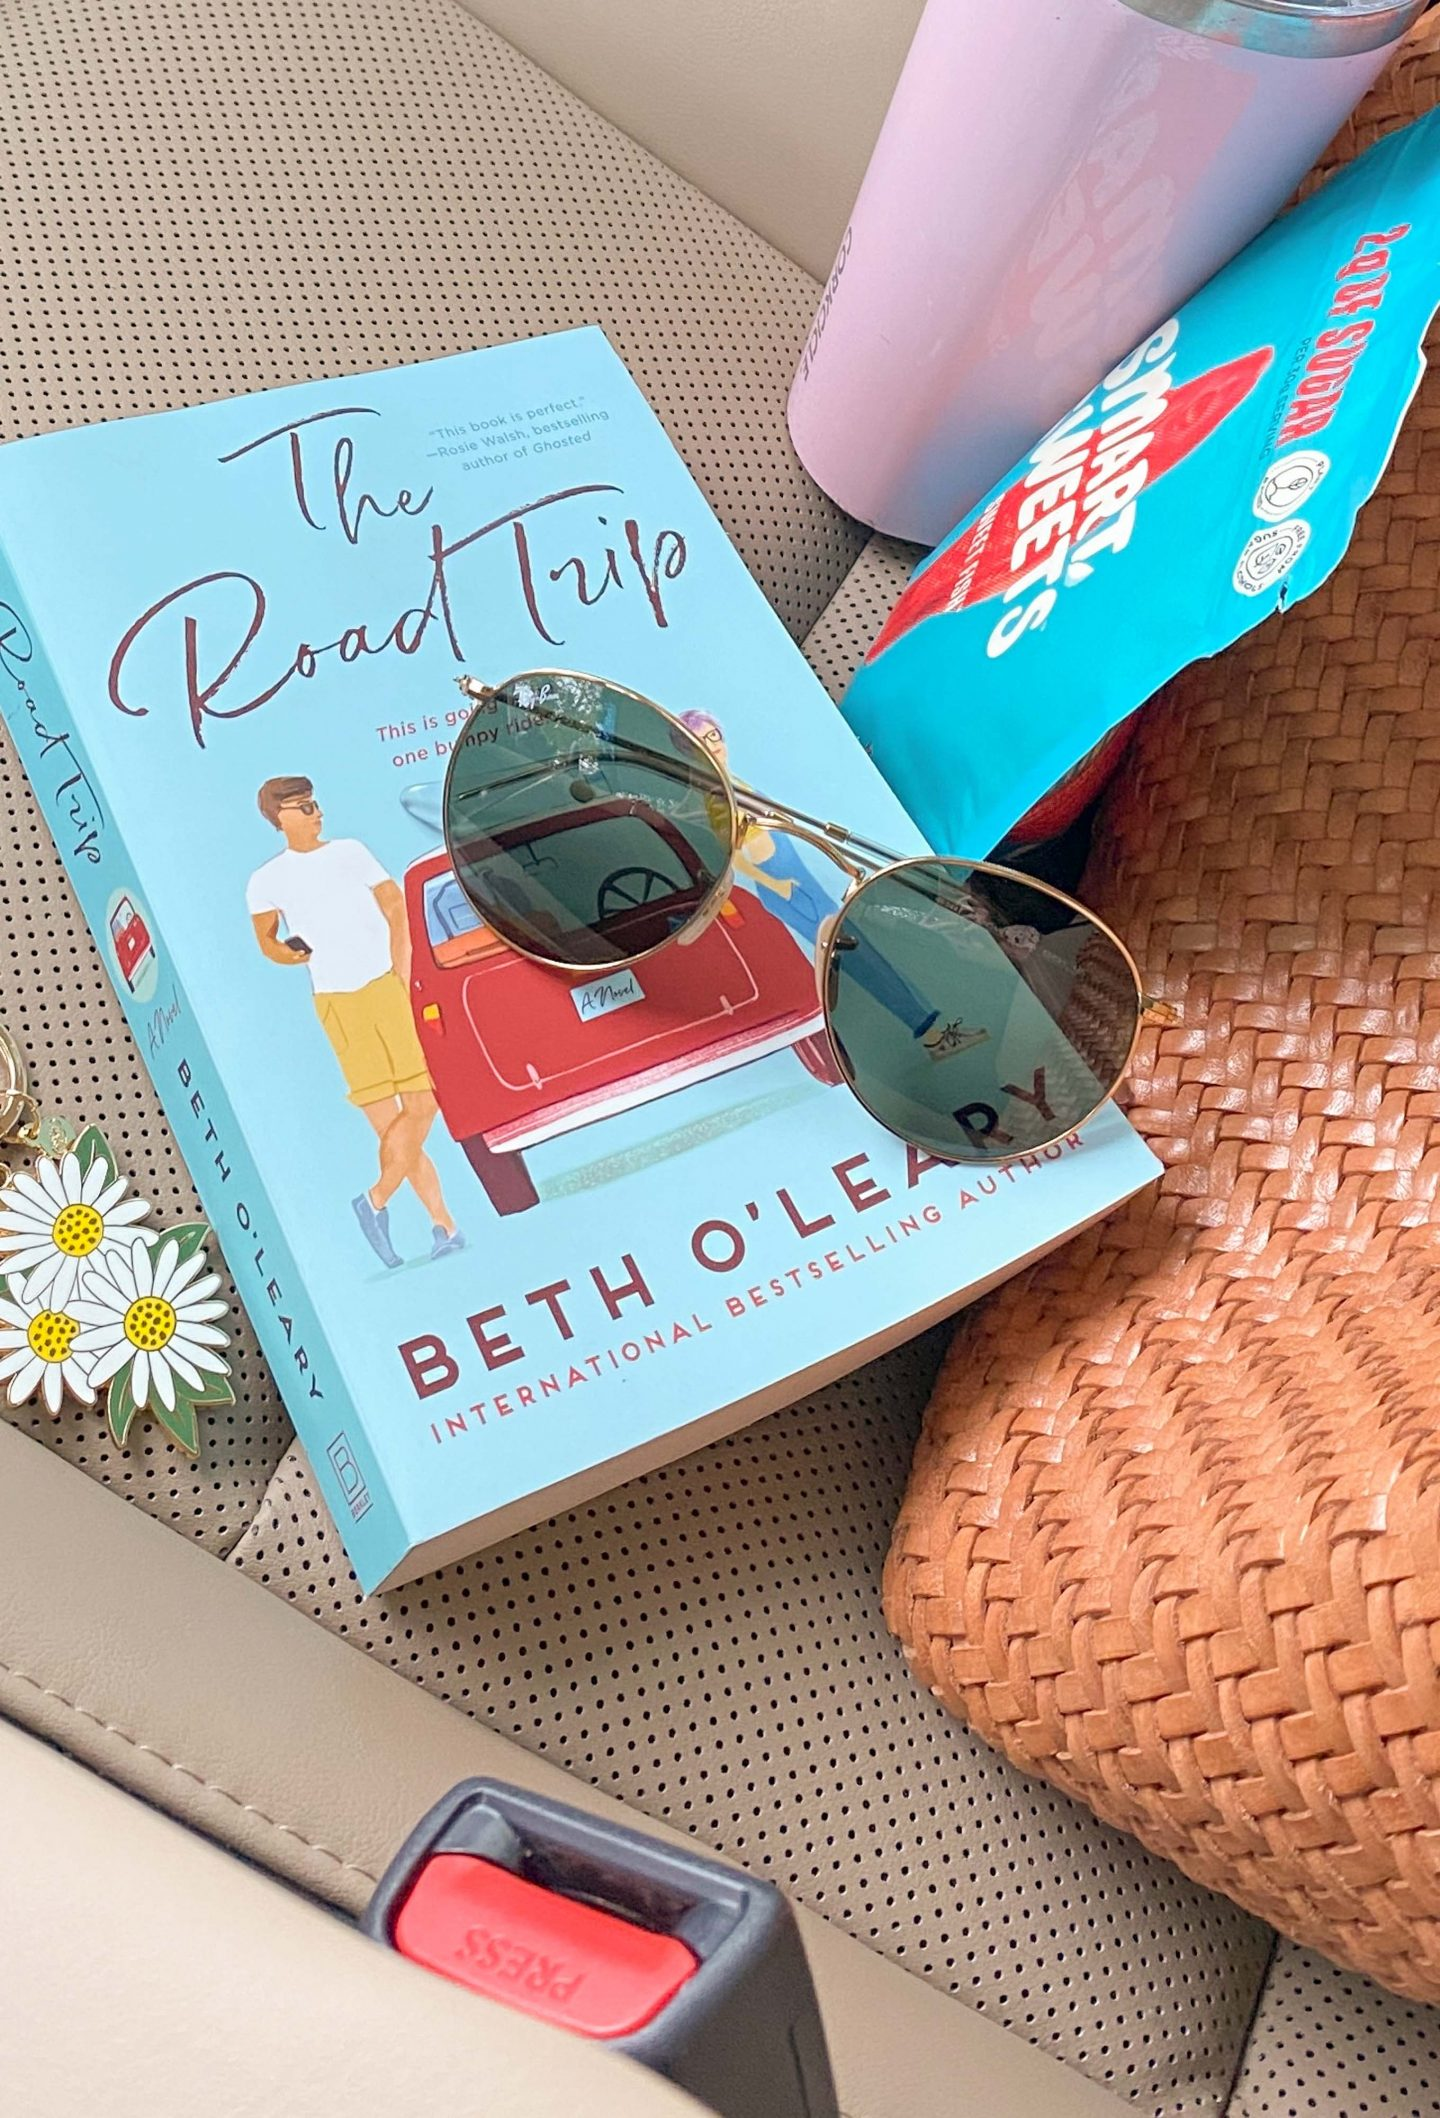 July's Book: The Road Trip